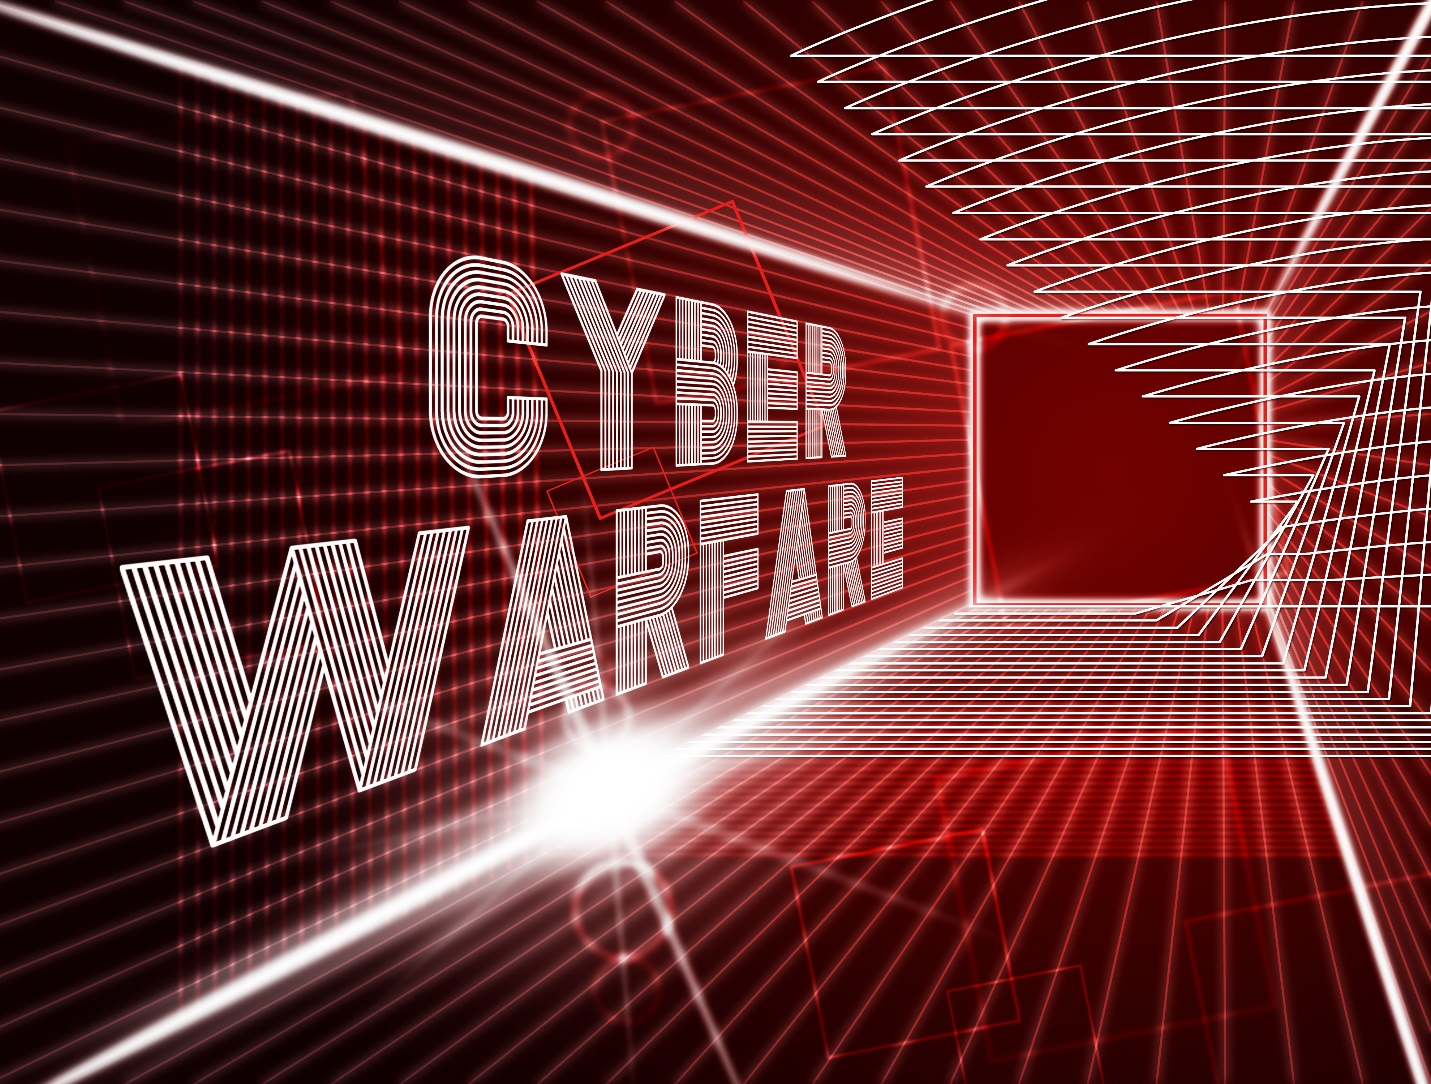 Cyberwarfare Digital Armed Attack Surveillance